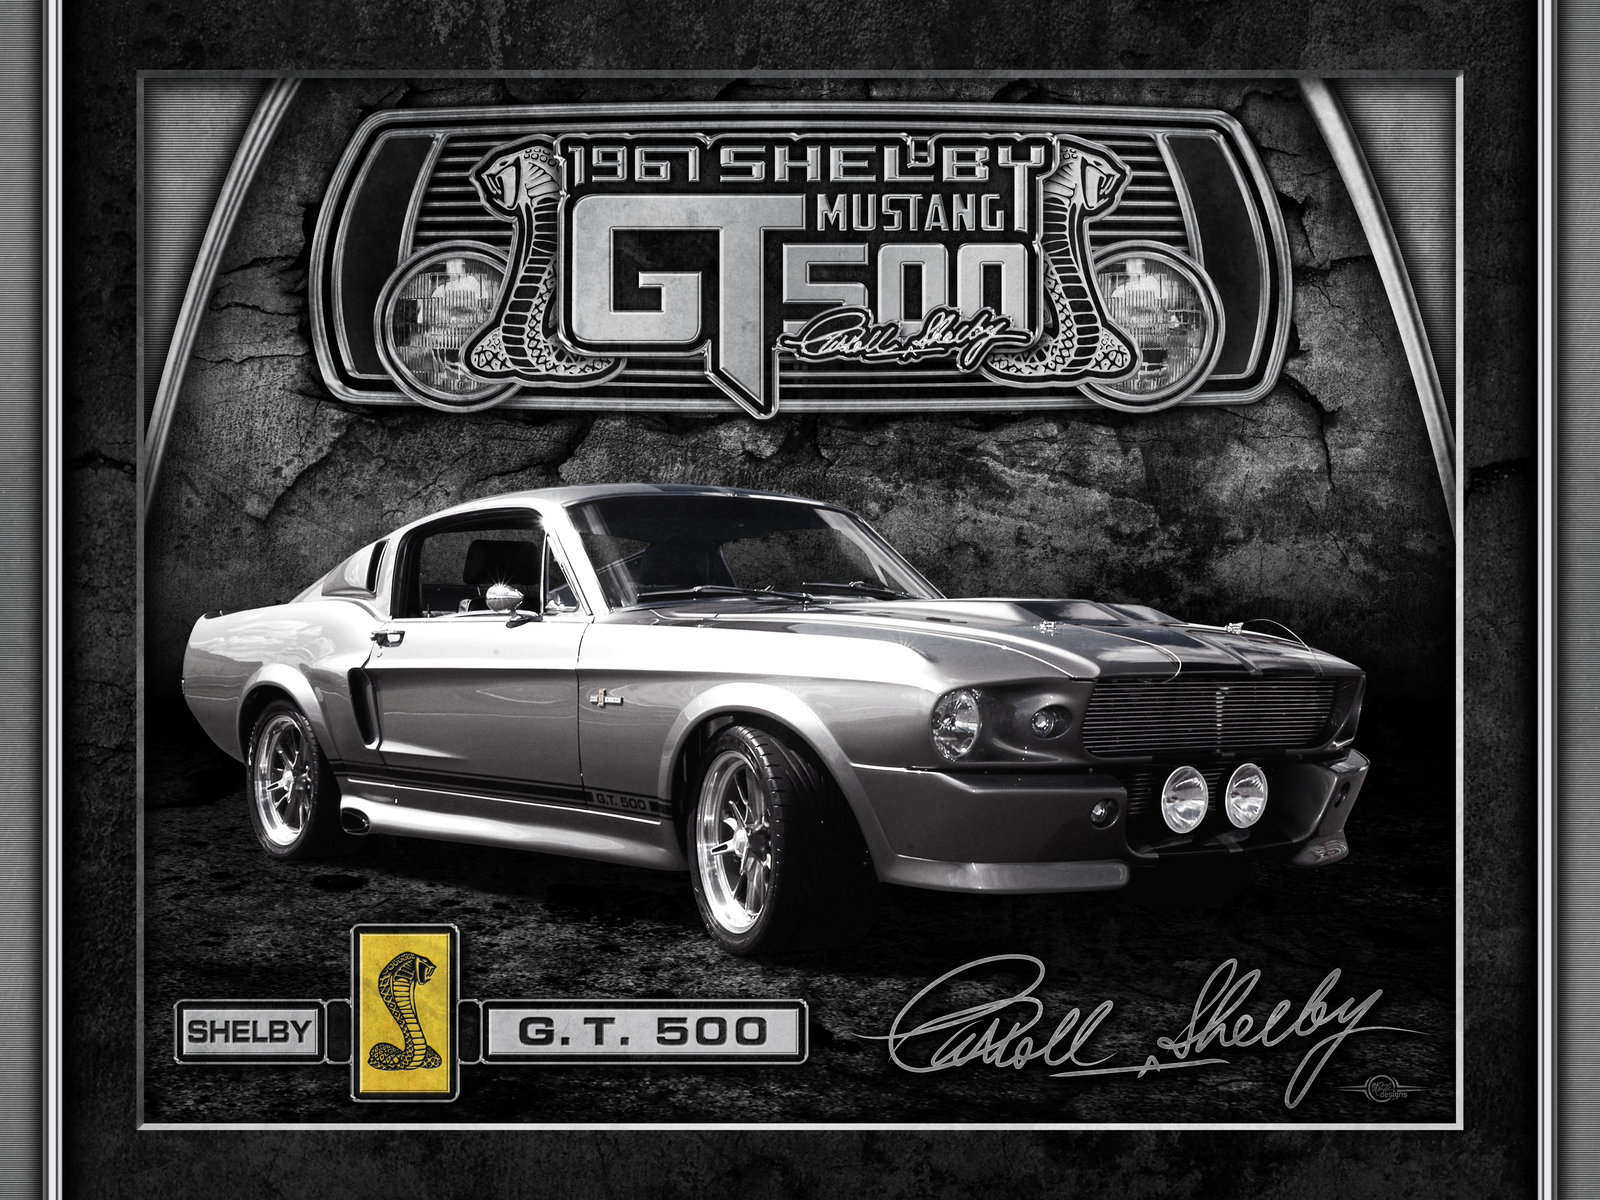 Shelby gt500 cr900 1967 shelby mustang gt500